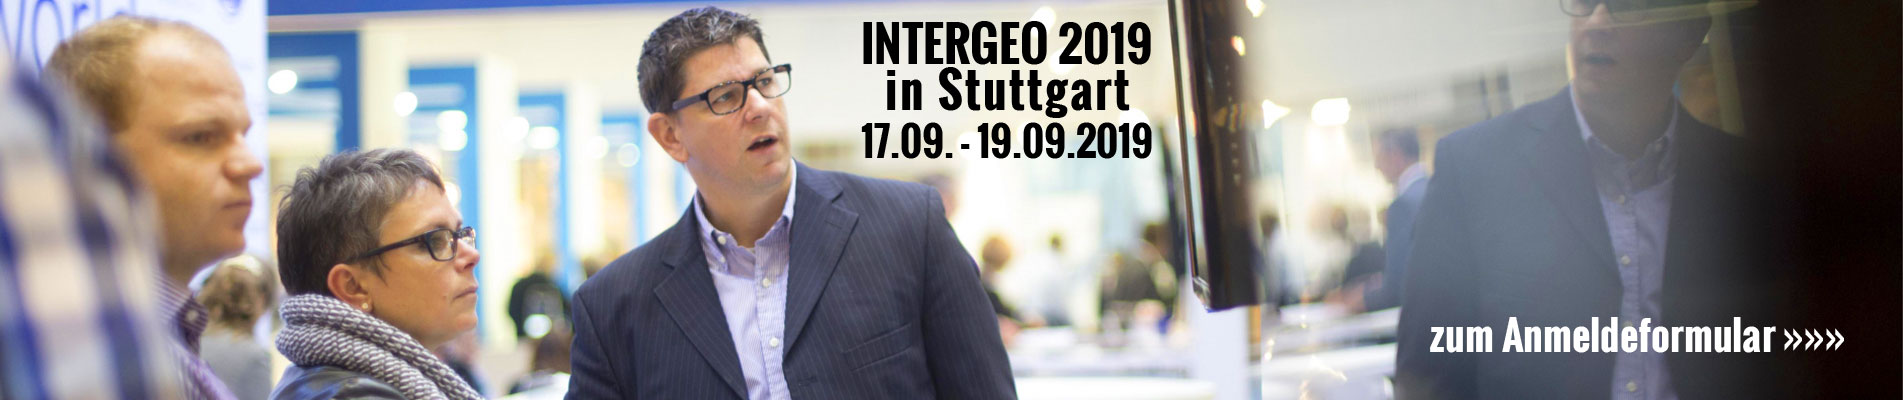 INTERGEO in Stuttgart vom 17.09.- 19.09.2019